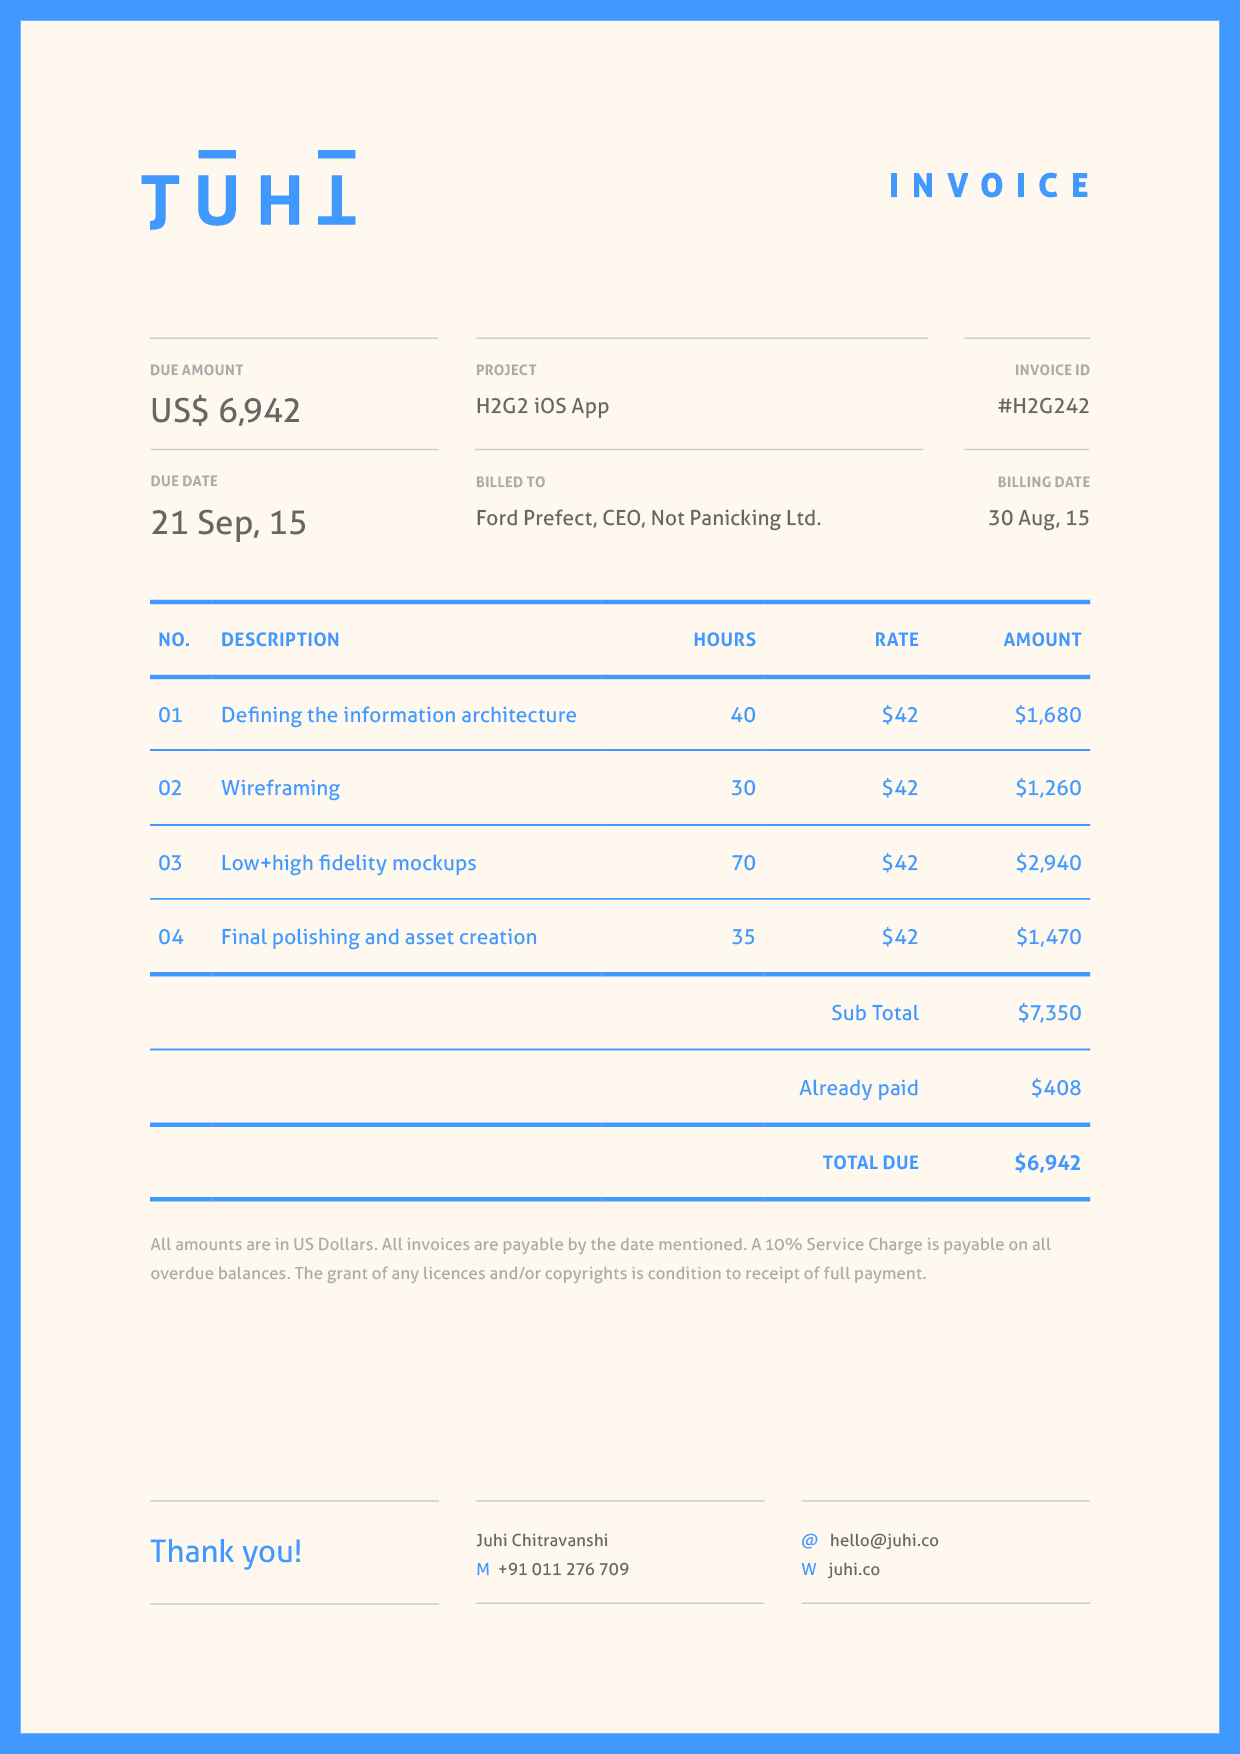 Usdgus  Surprising Dont Hold Back On Your Invoice  Inspiring Designs  With Interesting Invoice By Juhi Chitravanshi Follow With Astounding Sample Design Invoice Also Cif Invoice In Addition Easy Invoice Finance And Free Invoice Word Template As Well As Invoicing Database Additionally Invoice  From Inspirationfeedcom With Usdgus  Interesting Dont Hold Back On Your Invoice  Inspiring Designs  With Astounding Invoice By Juhi Chitravanshi Follow And Surprising Sample Design Invoice Also Cif Invoice In Addition Easy Invoice Finance From Inspirationfeedcom